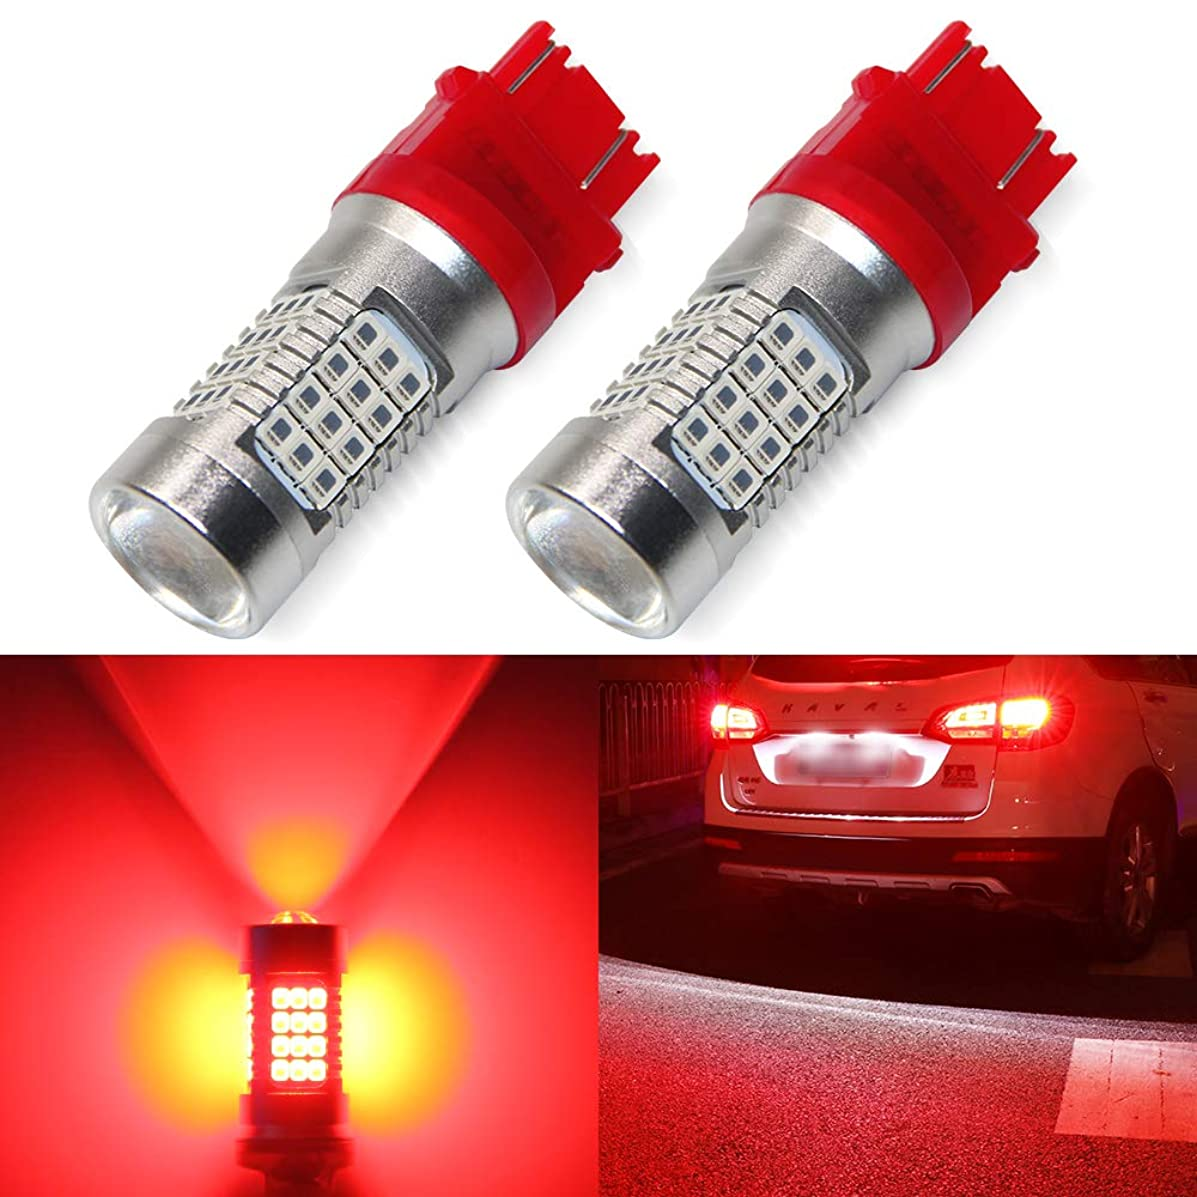 3157 Led Bulbs Red 2000 Lumens 3156 3057 3056 4157 54-SMD LED Chipsets 12-24V 2PC Pack Led Bulb with Projector for Car Vehcile Used as Brake Tail Lights, Newest Super Bright (3157 Red)